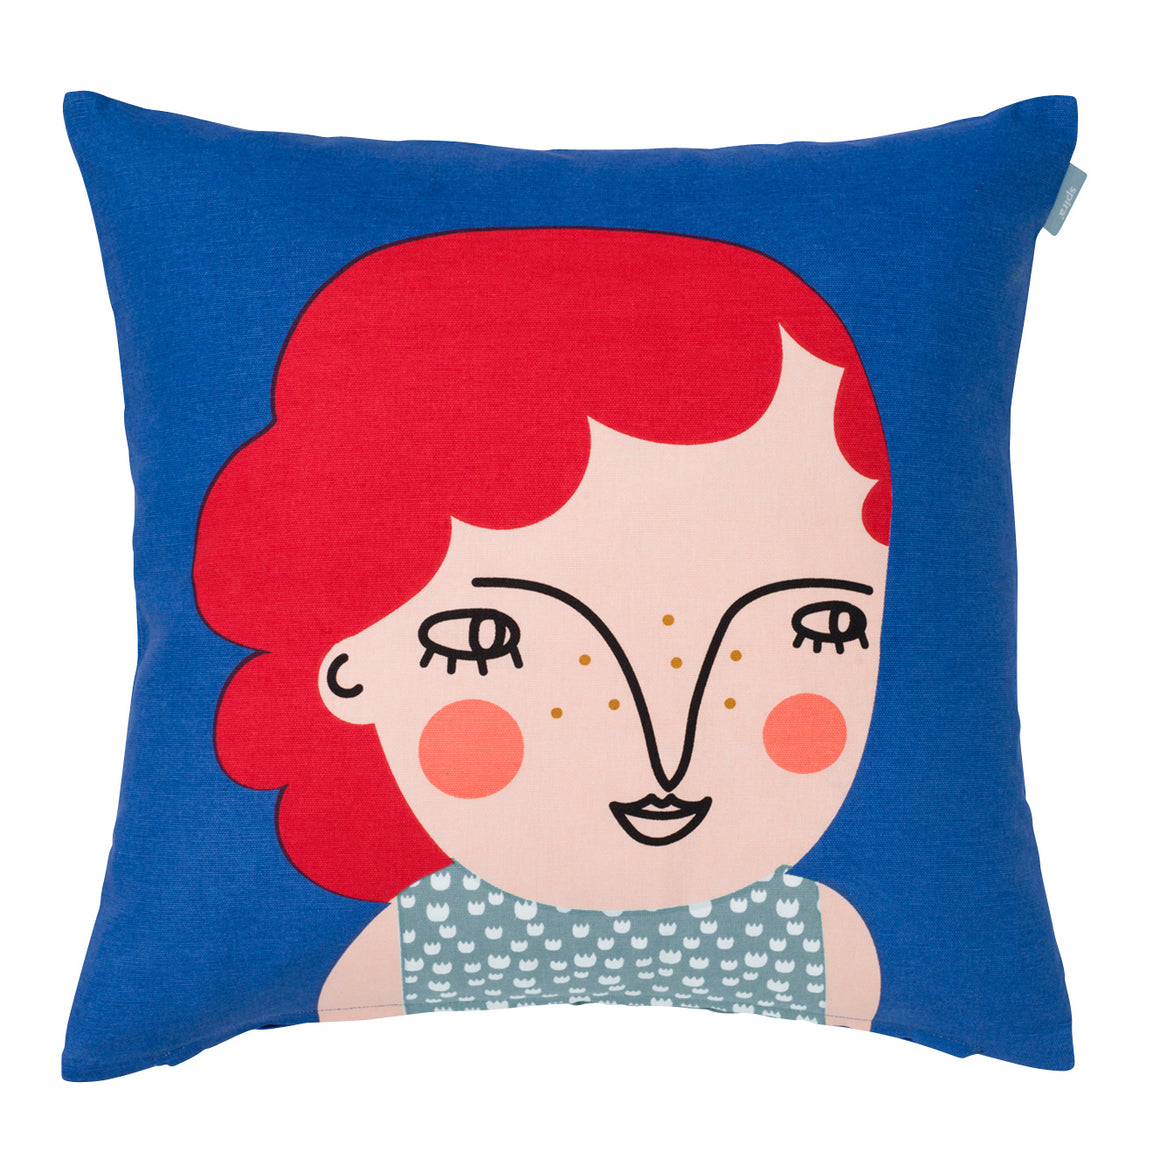 Lilly- Blue face cushion from Sweden